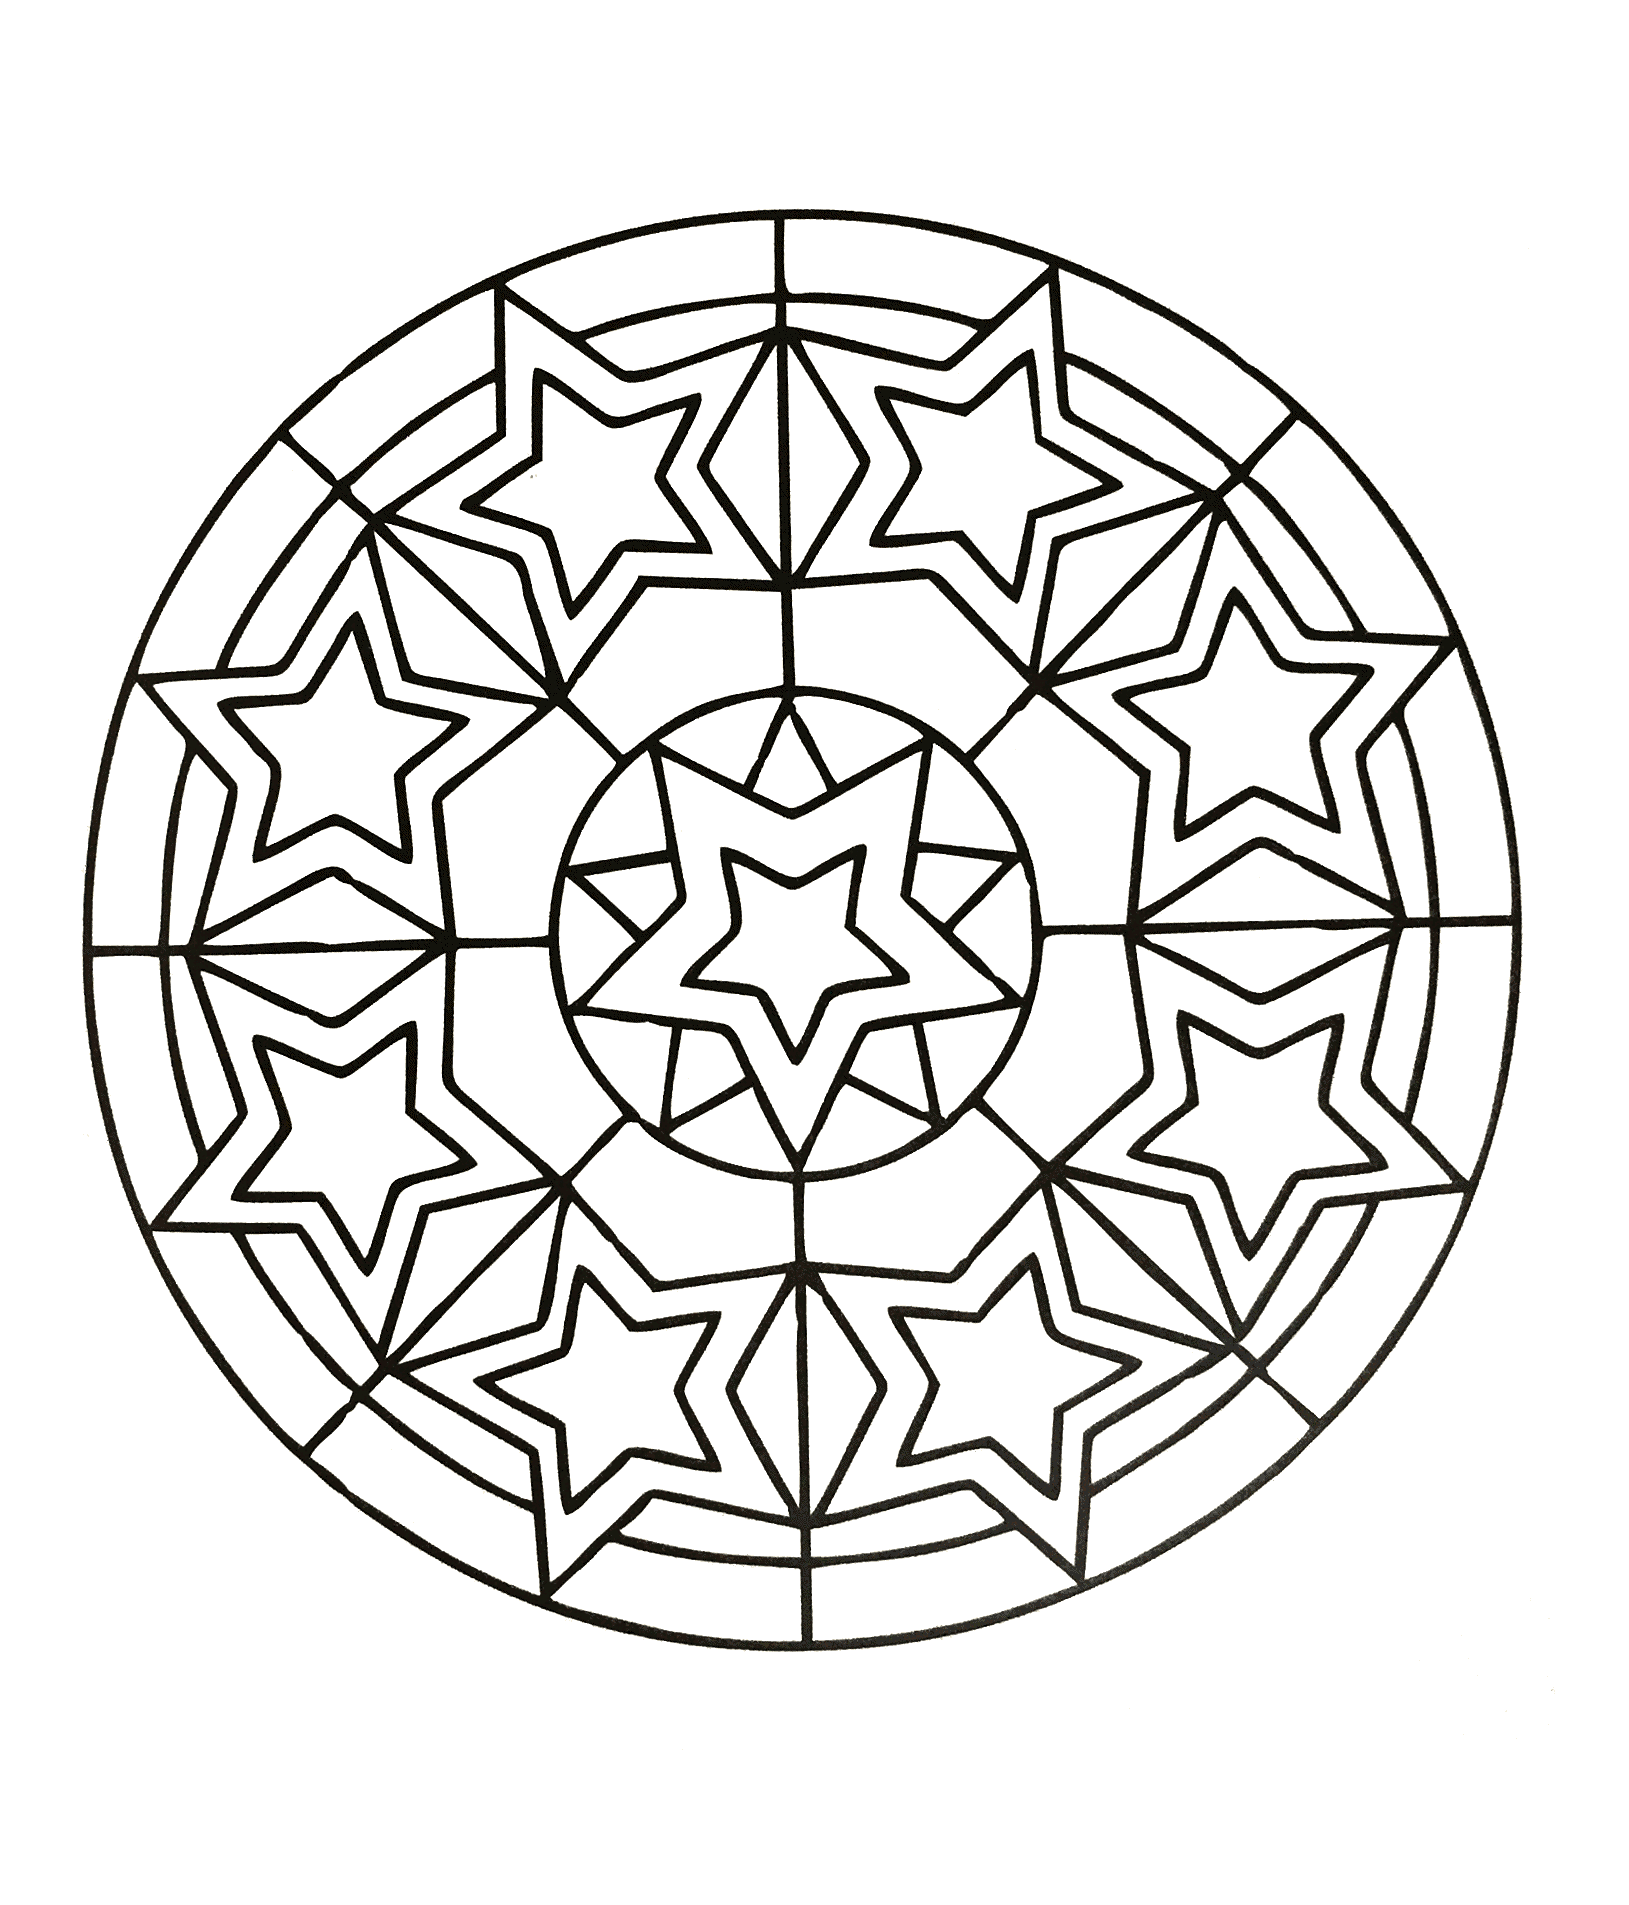 Simple Mandalas coloring page for children